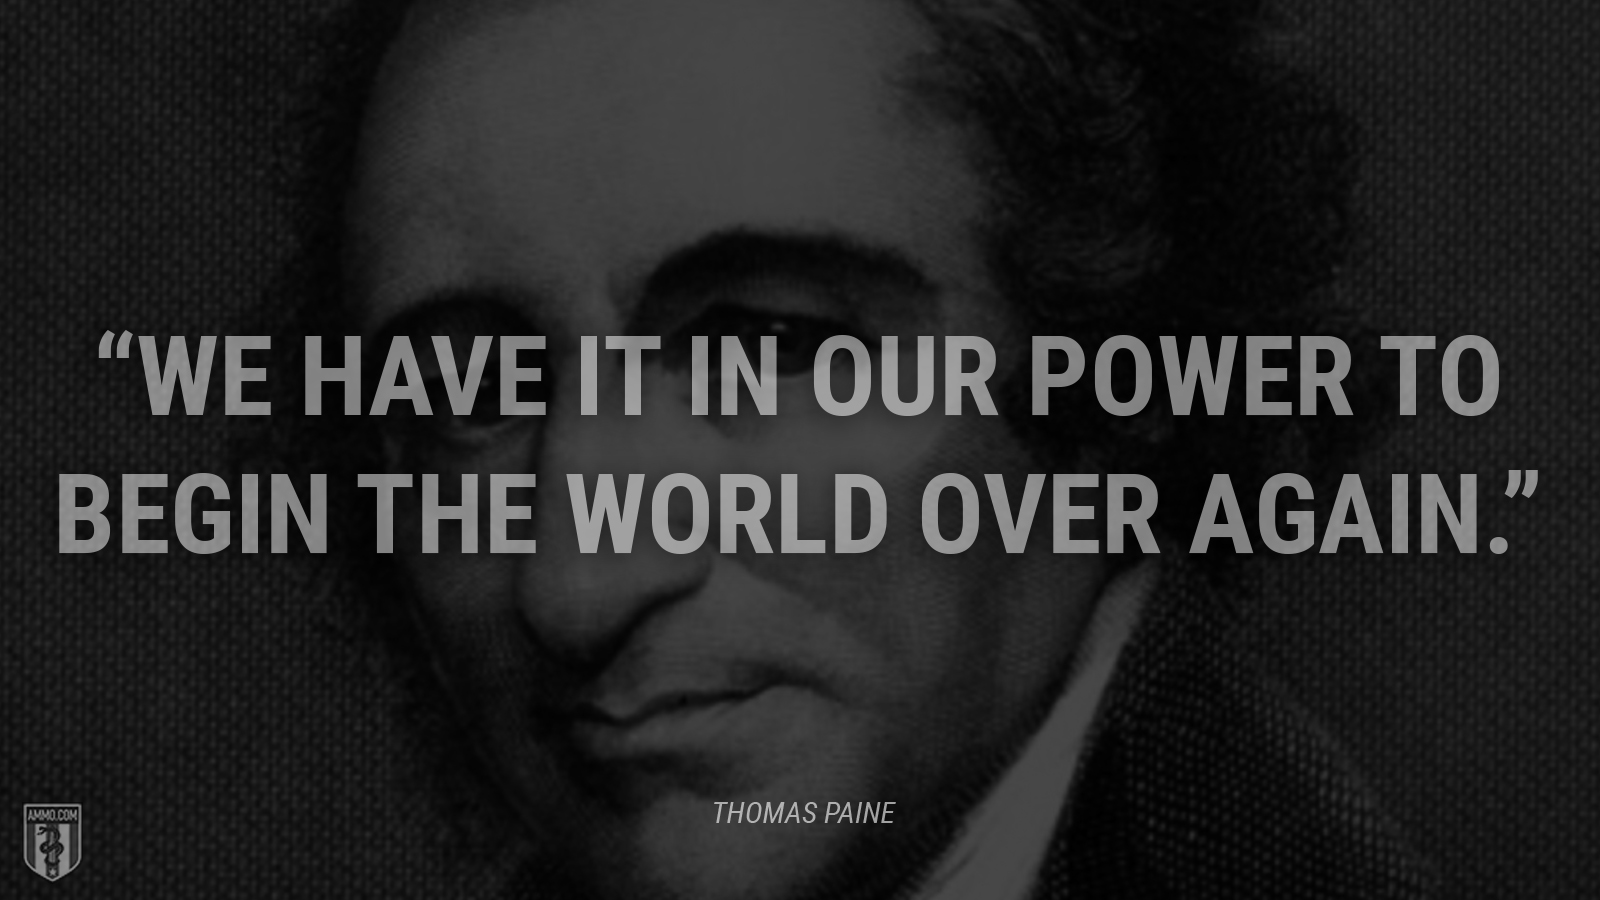 """We have it in our power to begin the world over again."" - Thomas Paine"